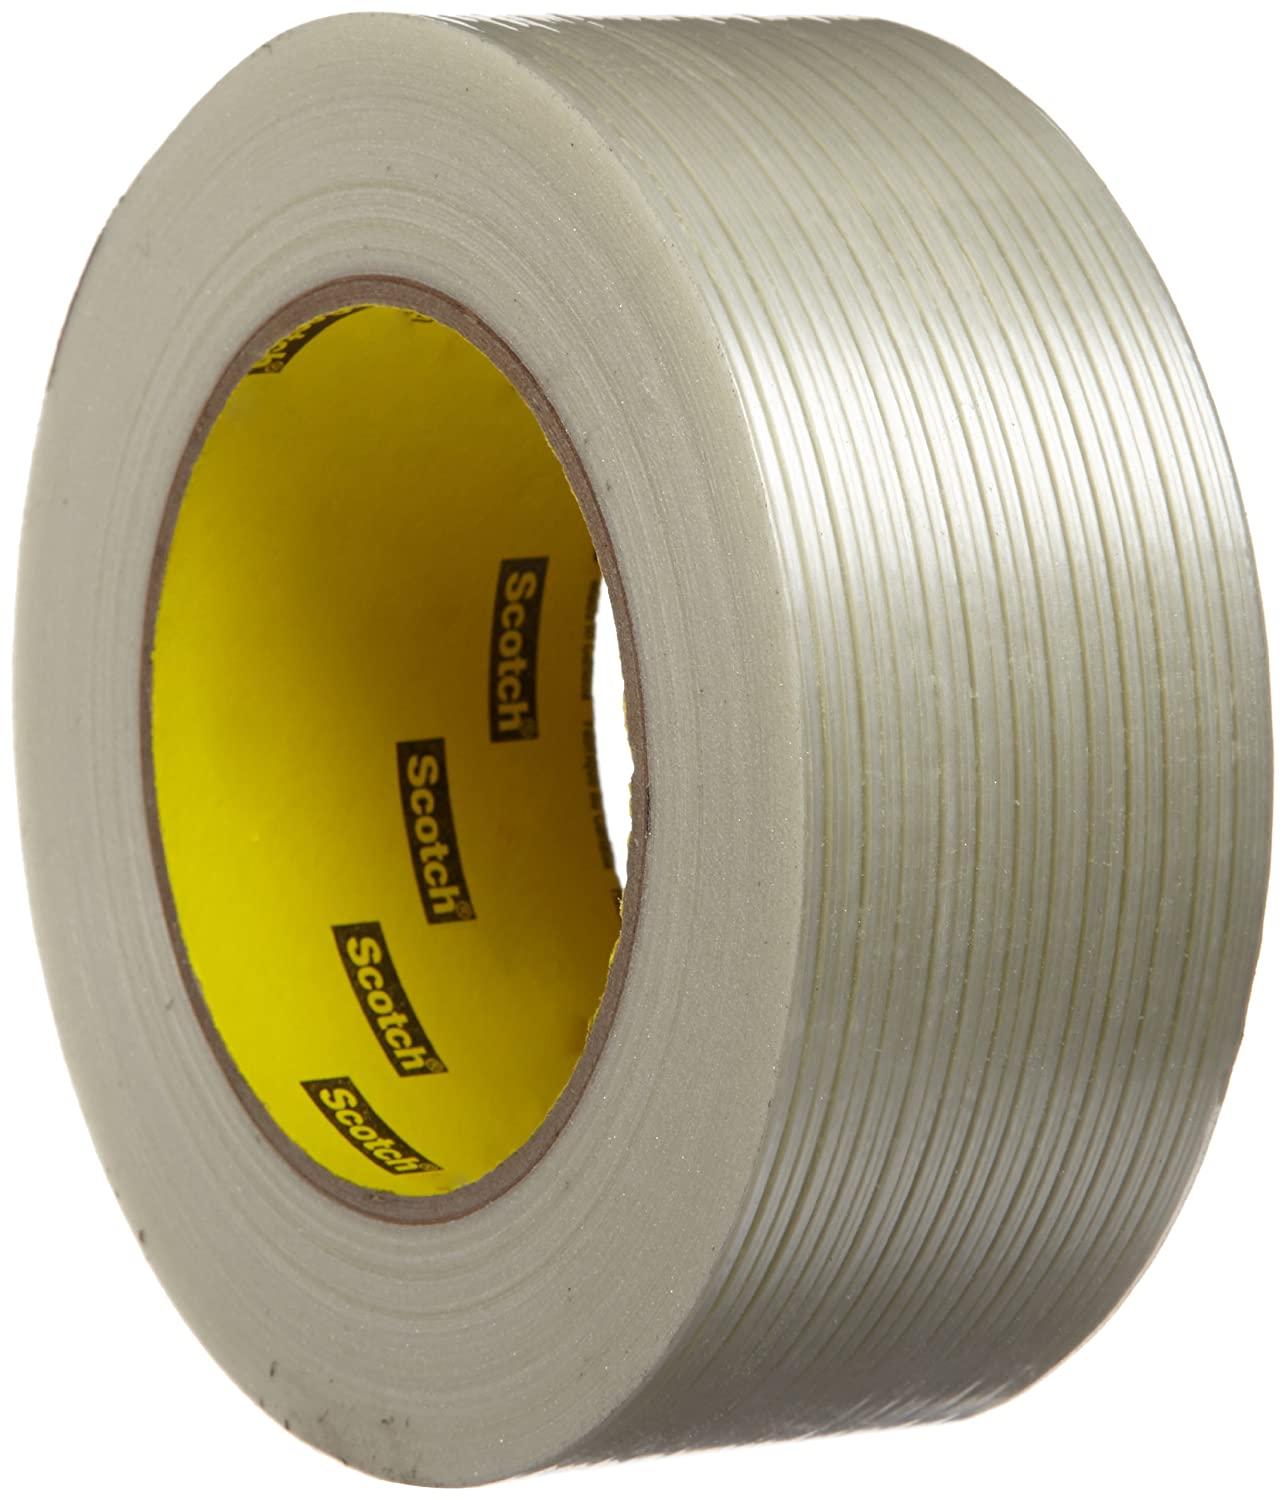 Amazon Scotch Filament Tape 897 Clear 48 mm x 55 m Pack of 1